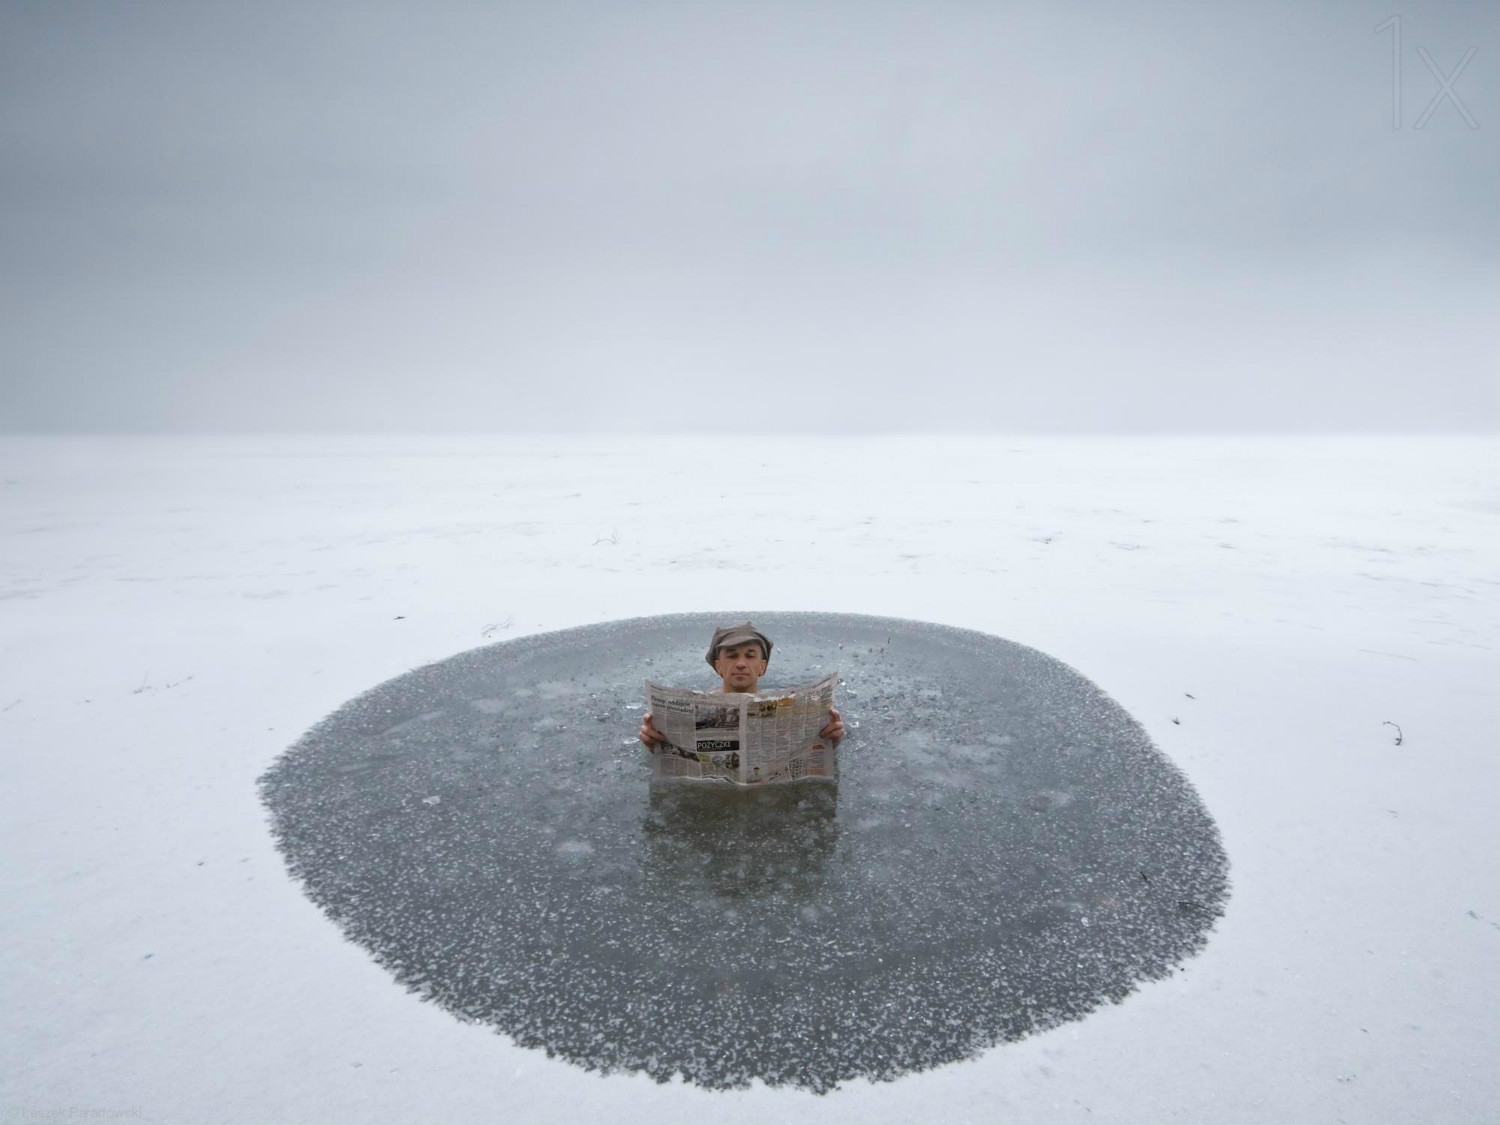 leszek paradowski photography landscape dramatic ice pool